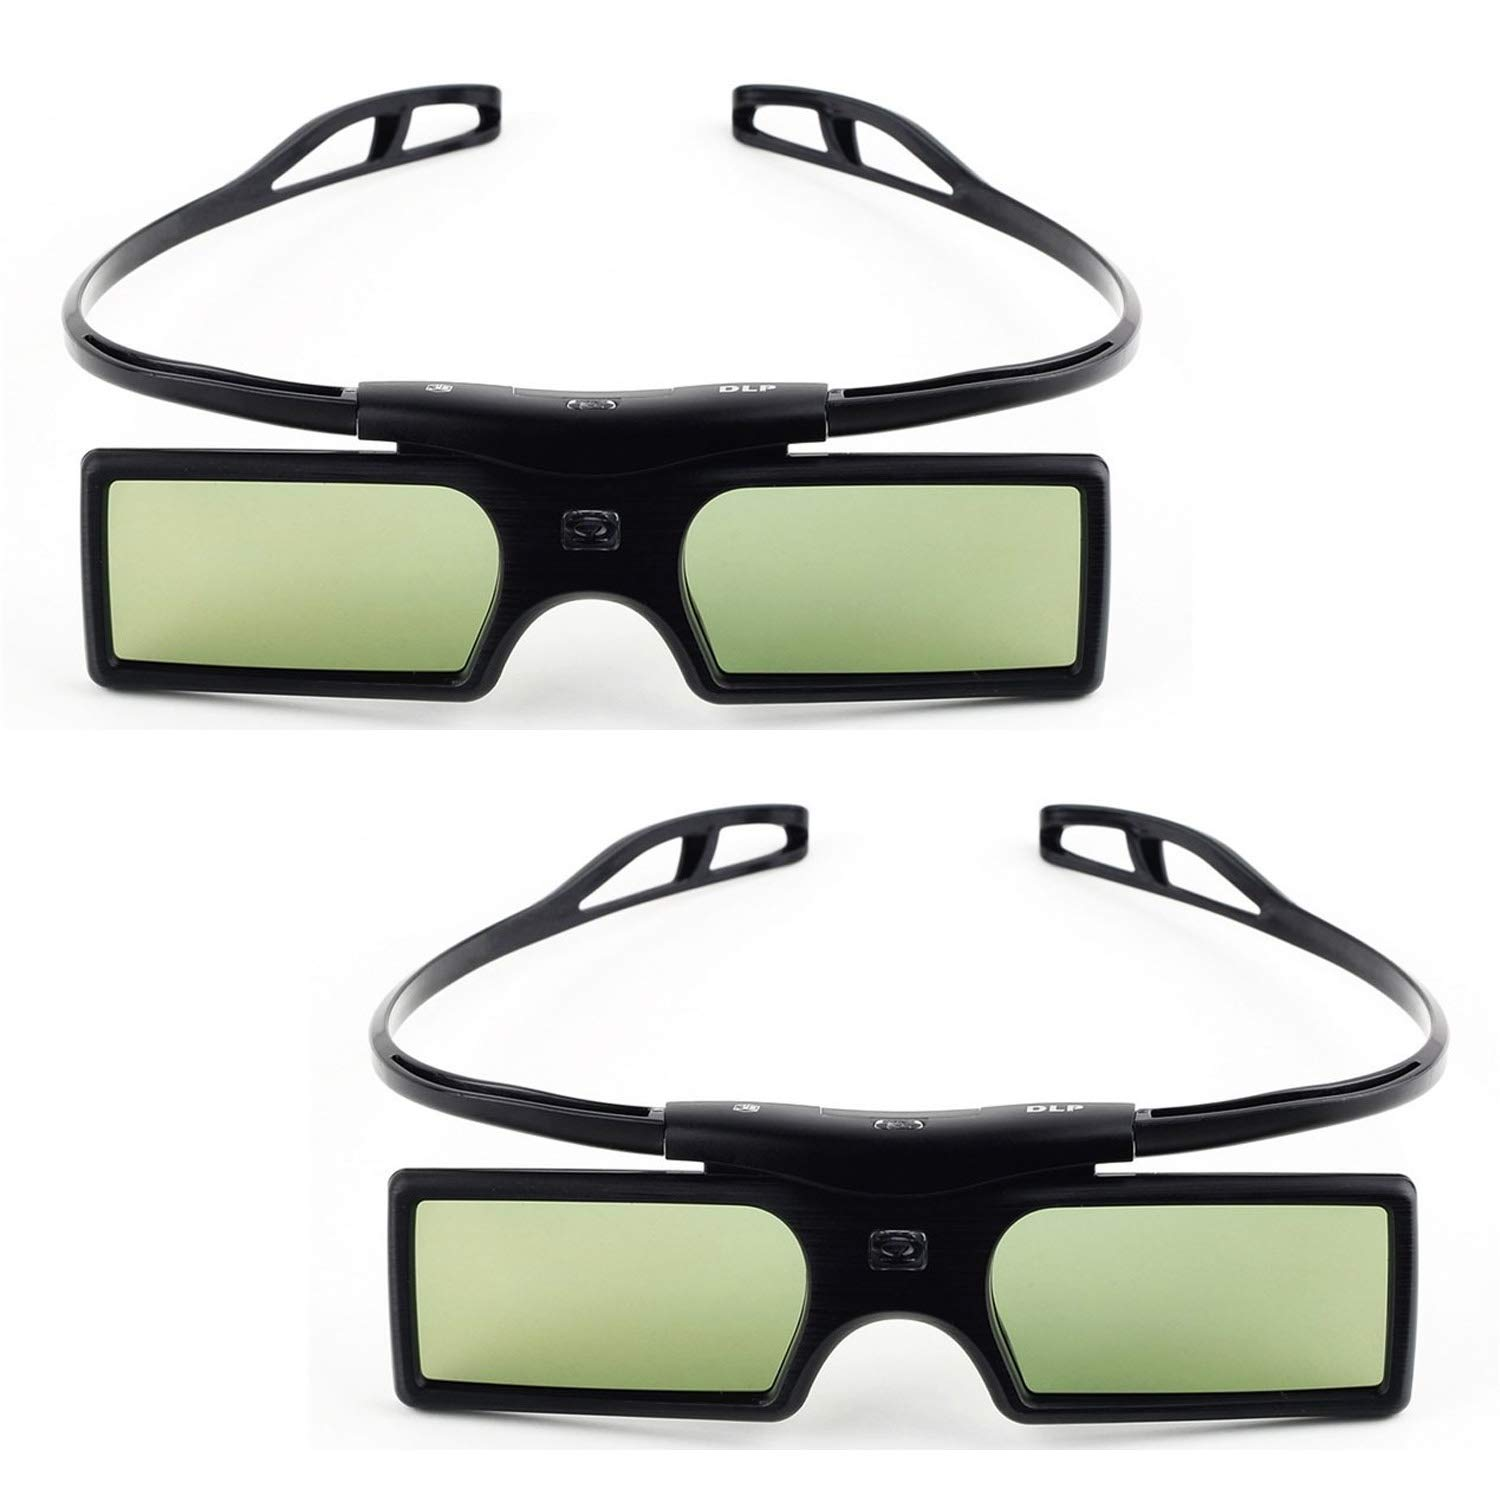 2 Set G15-DLP 3D Active Shutter Projector Glasses Smart TV Glasses Compatible with Optoma LG Acer DLP-Link DLP Link Projectors Gafas 3D Gosearca